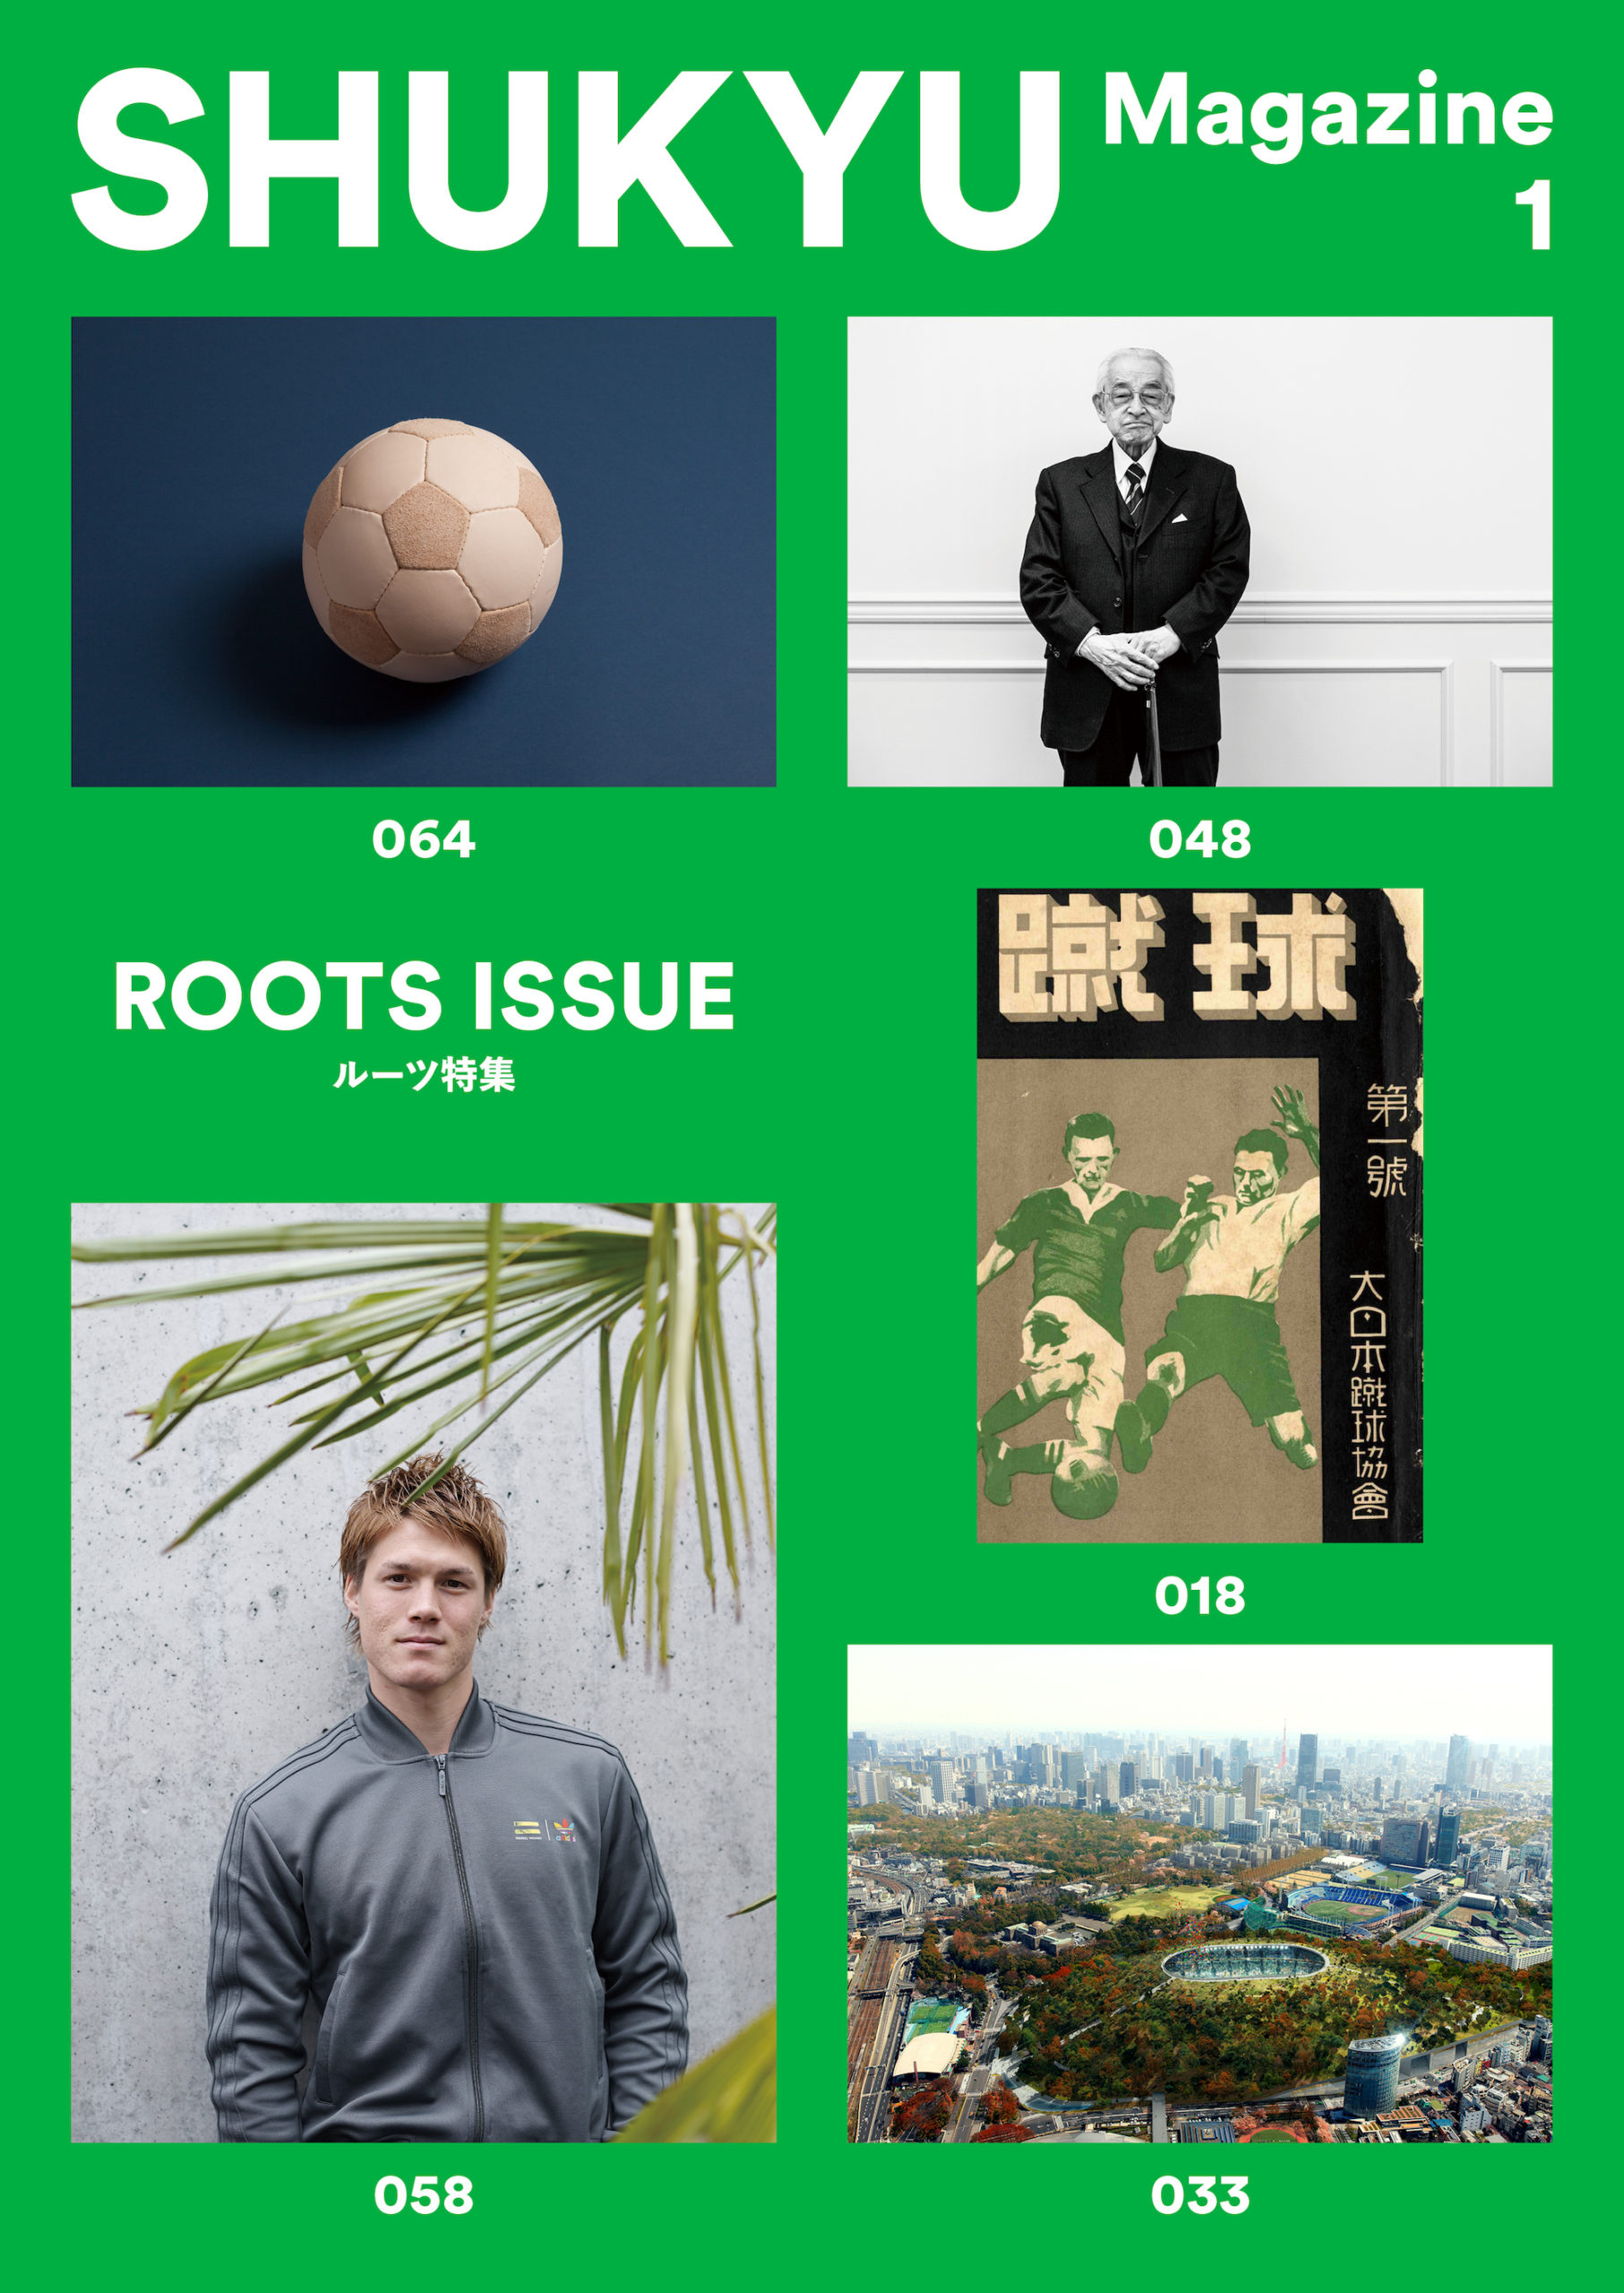 ISSUE 1 | ROOTS